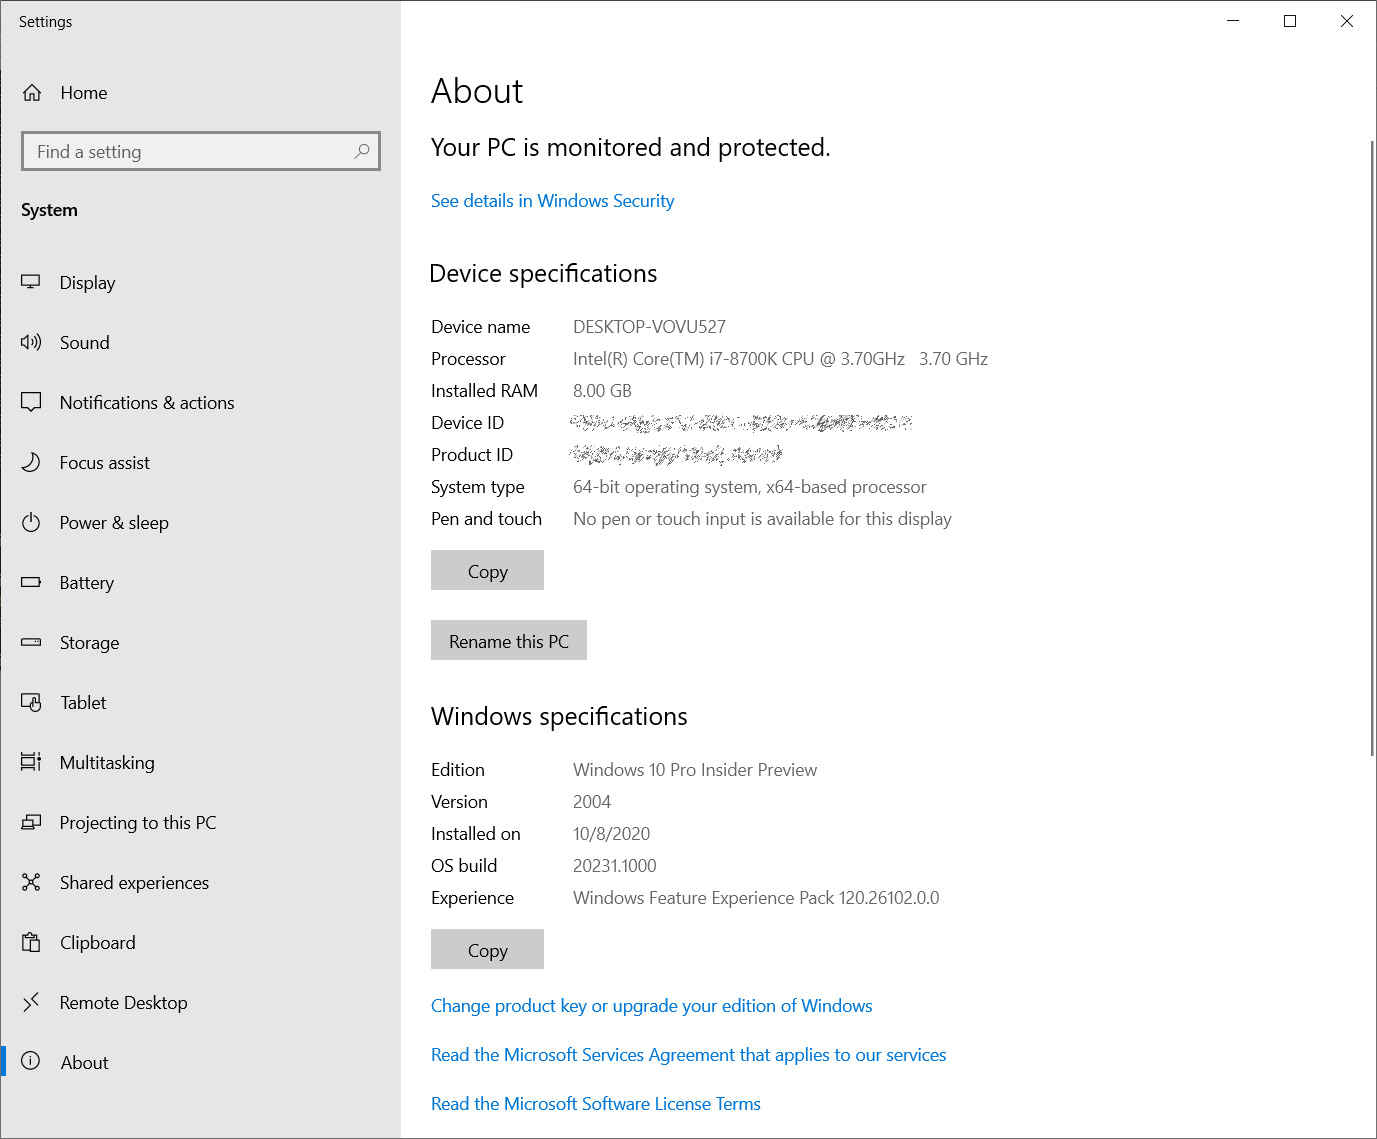 Updated about settings page